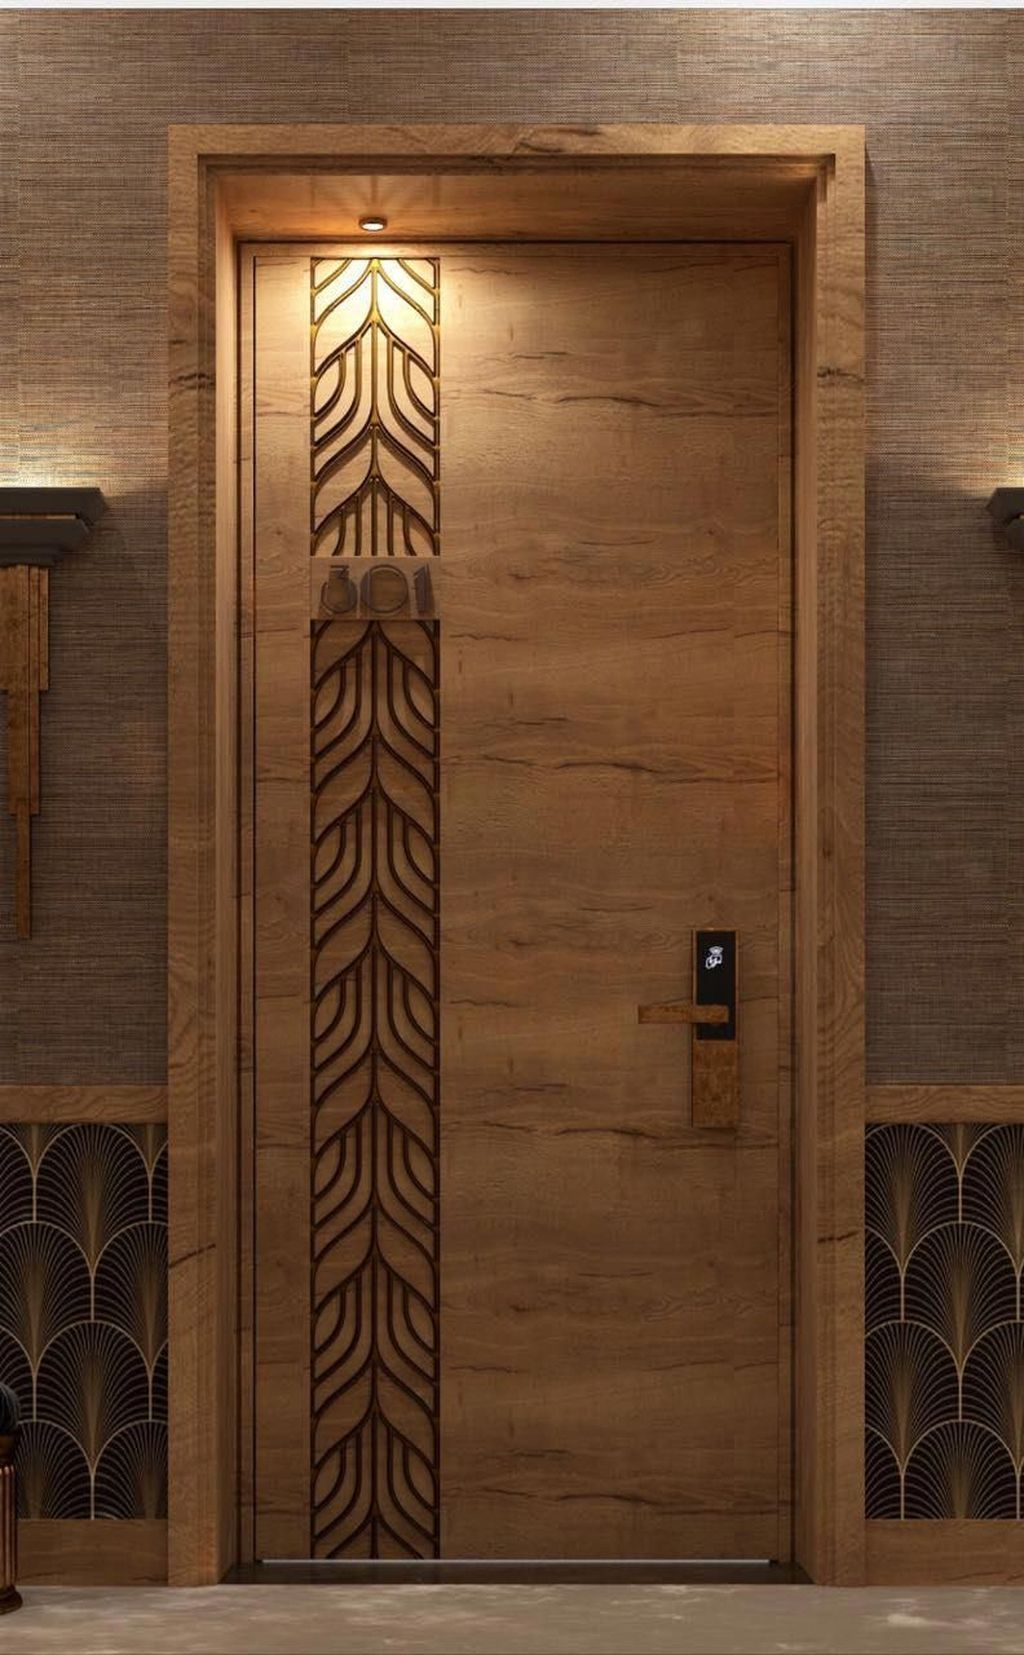 20 Artistic Wooden Door Design Ideas To Try Right Now In 2020